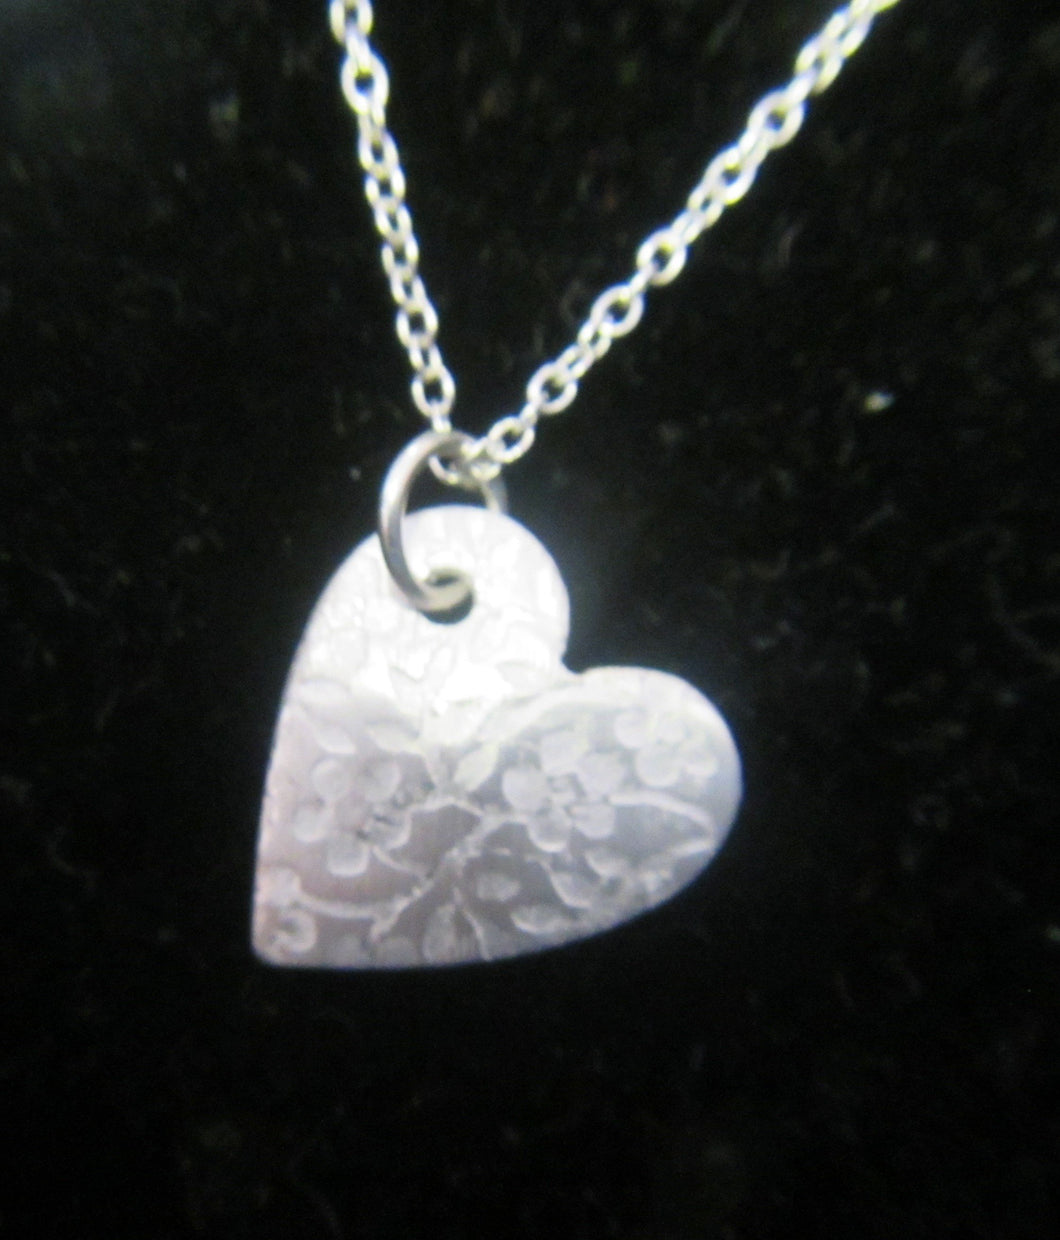 Handcrafted silver heart patterned pendant with 925 Silver necklace